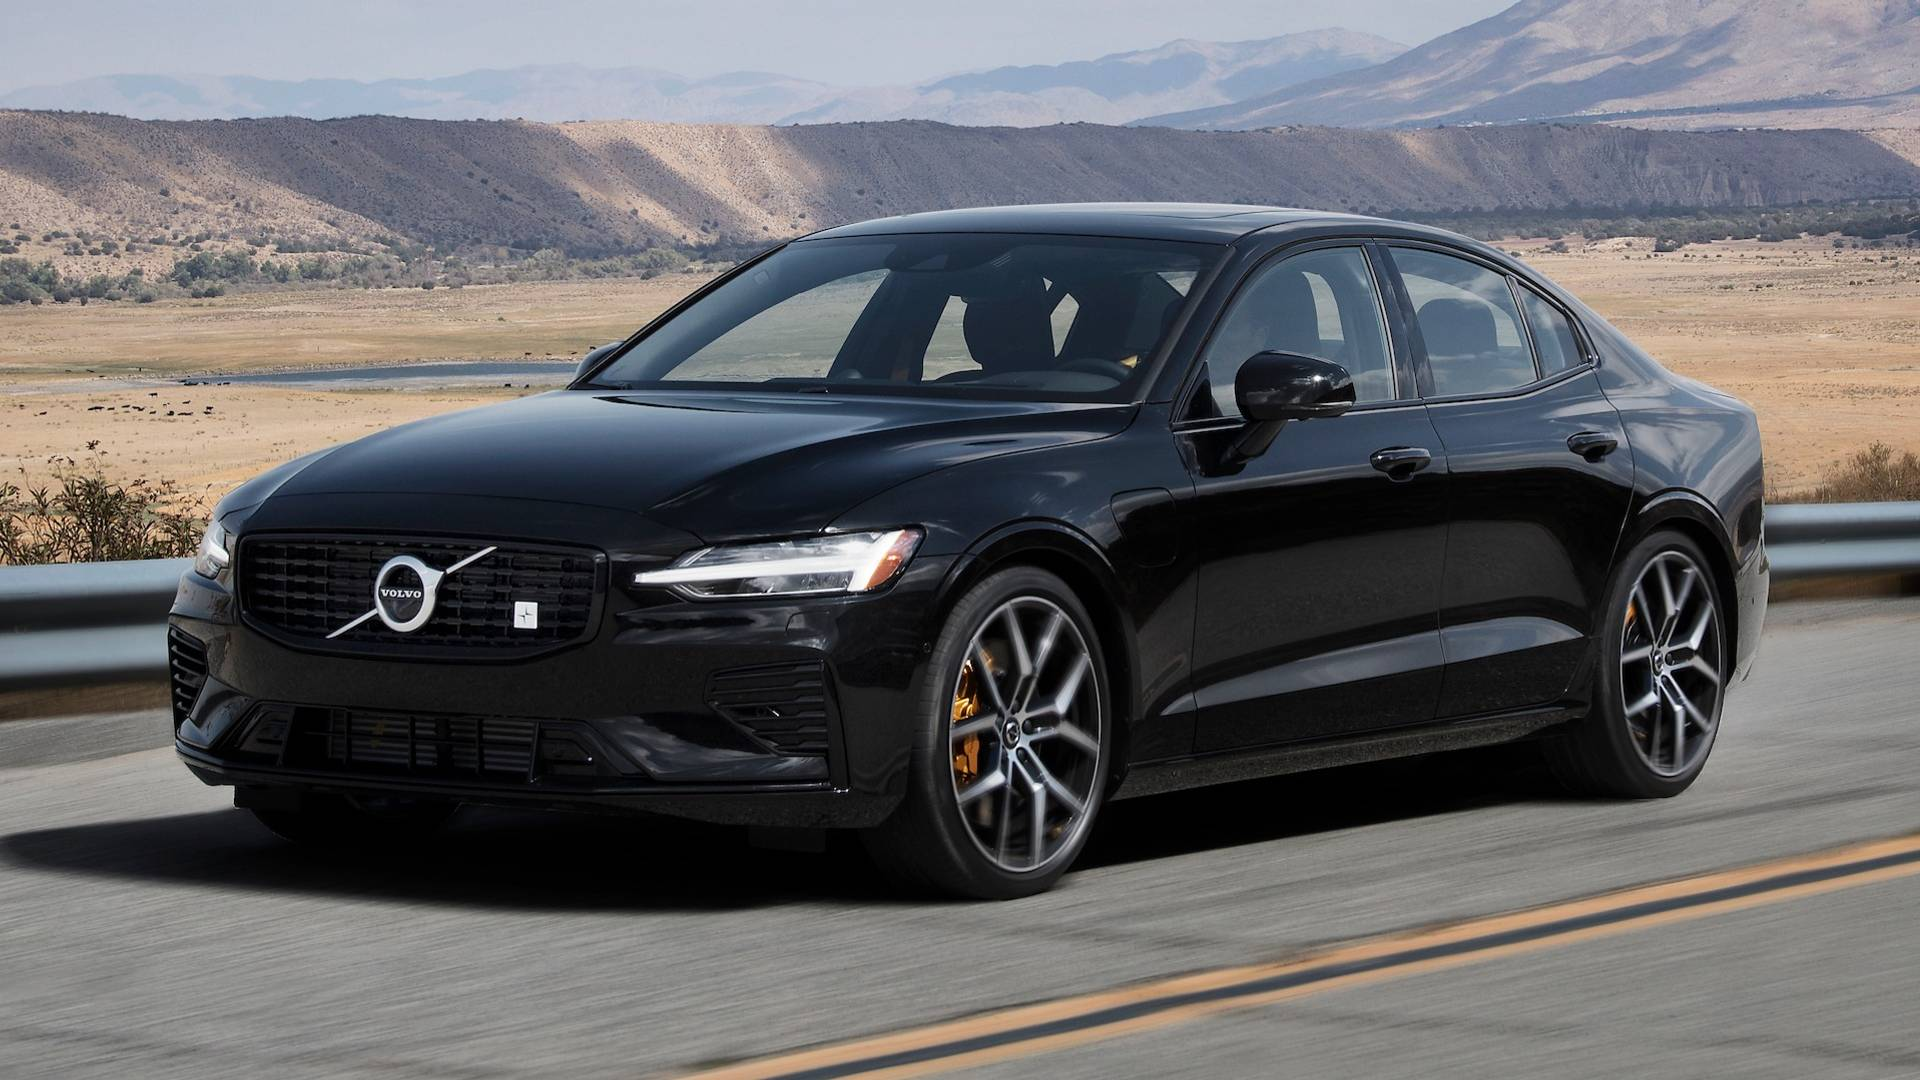 91 All New Volvo S60 2019 Style